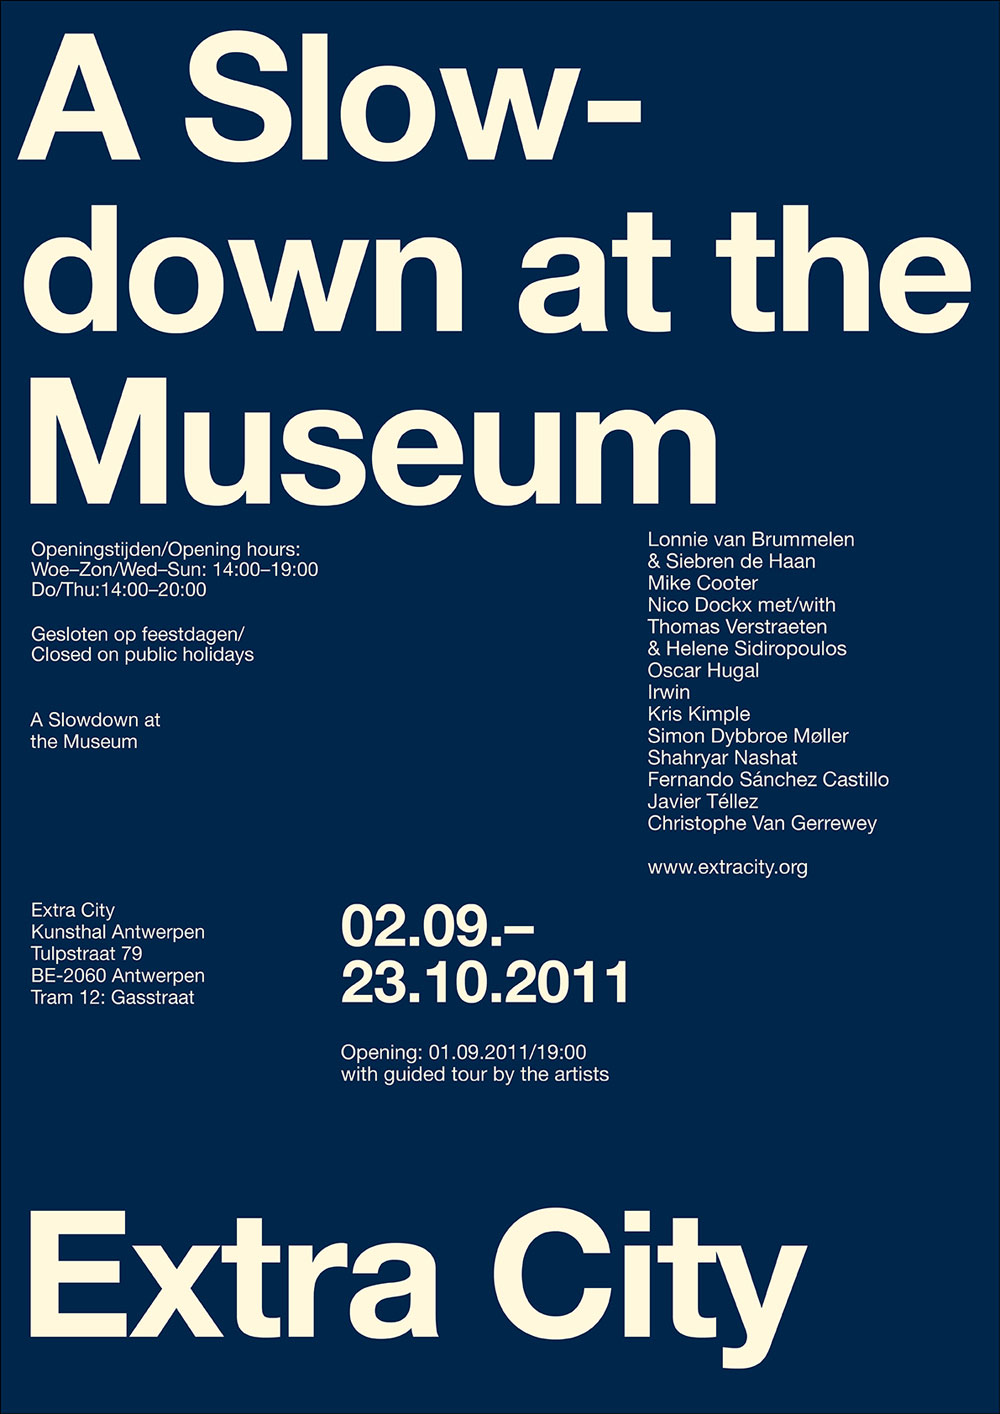 Exhibition poster design.